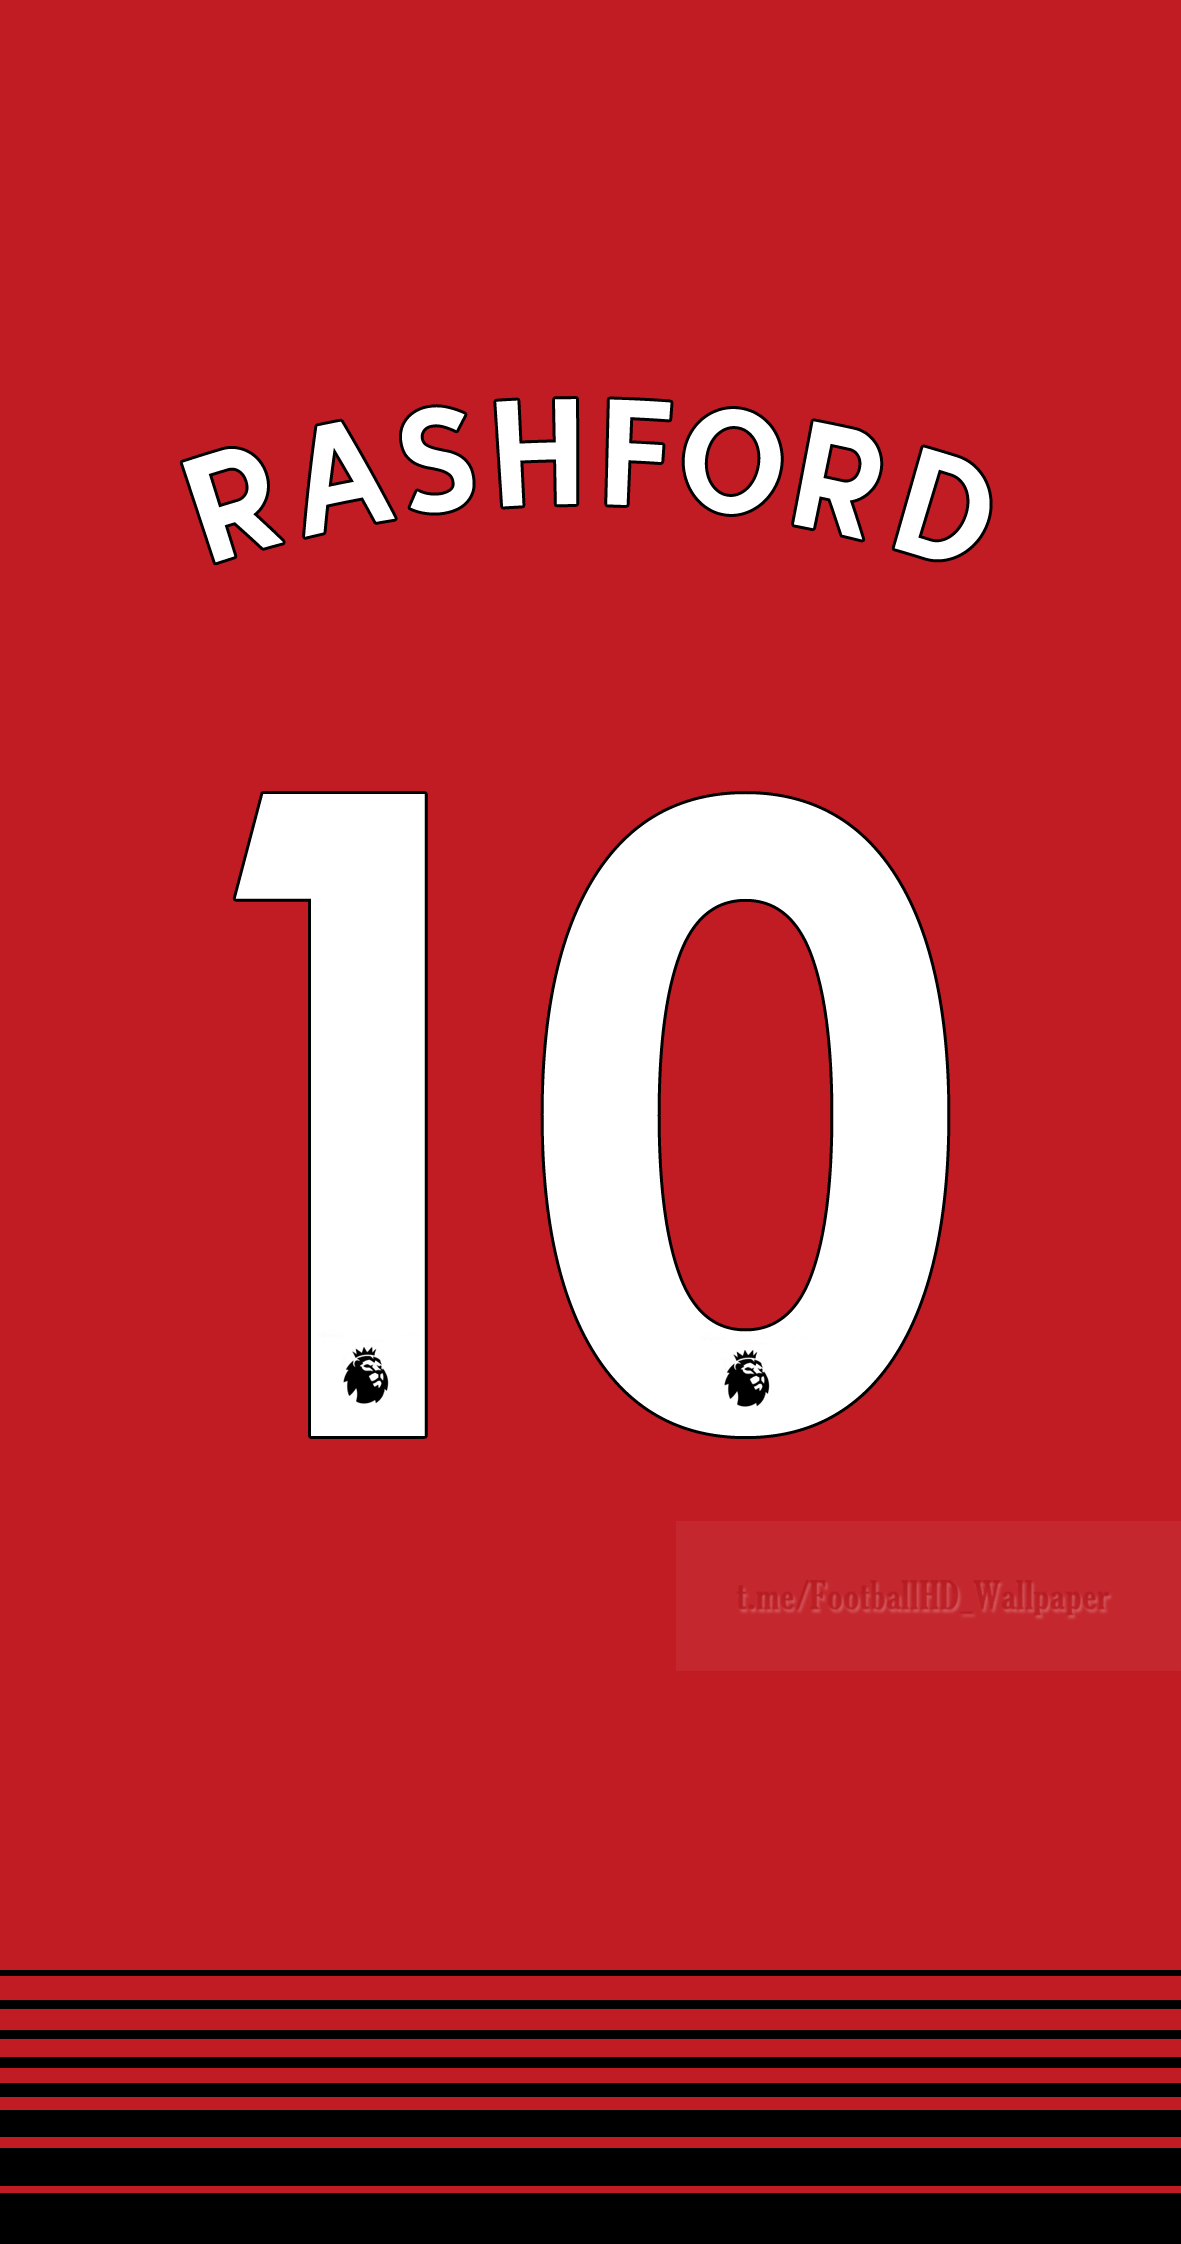 rashford 10 manchester united wallpaper manchester united football club soccer kits manchester united wallpaper manchester